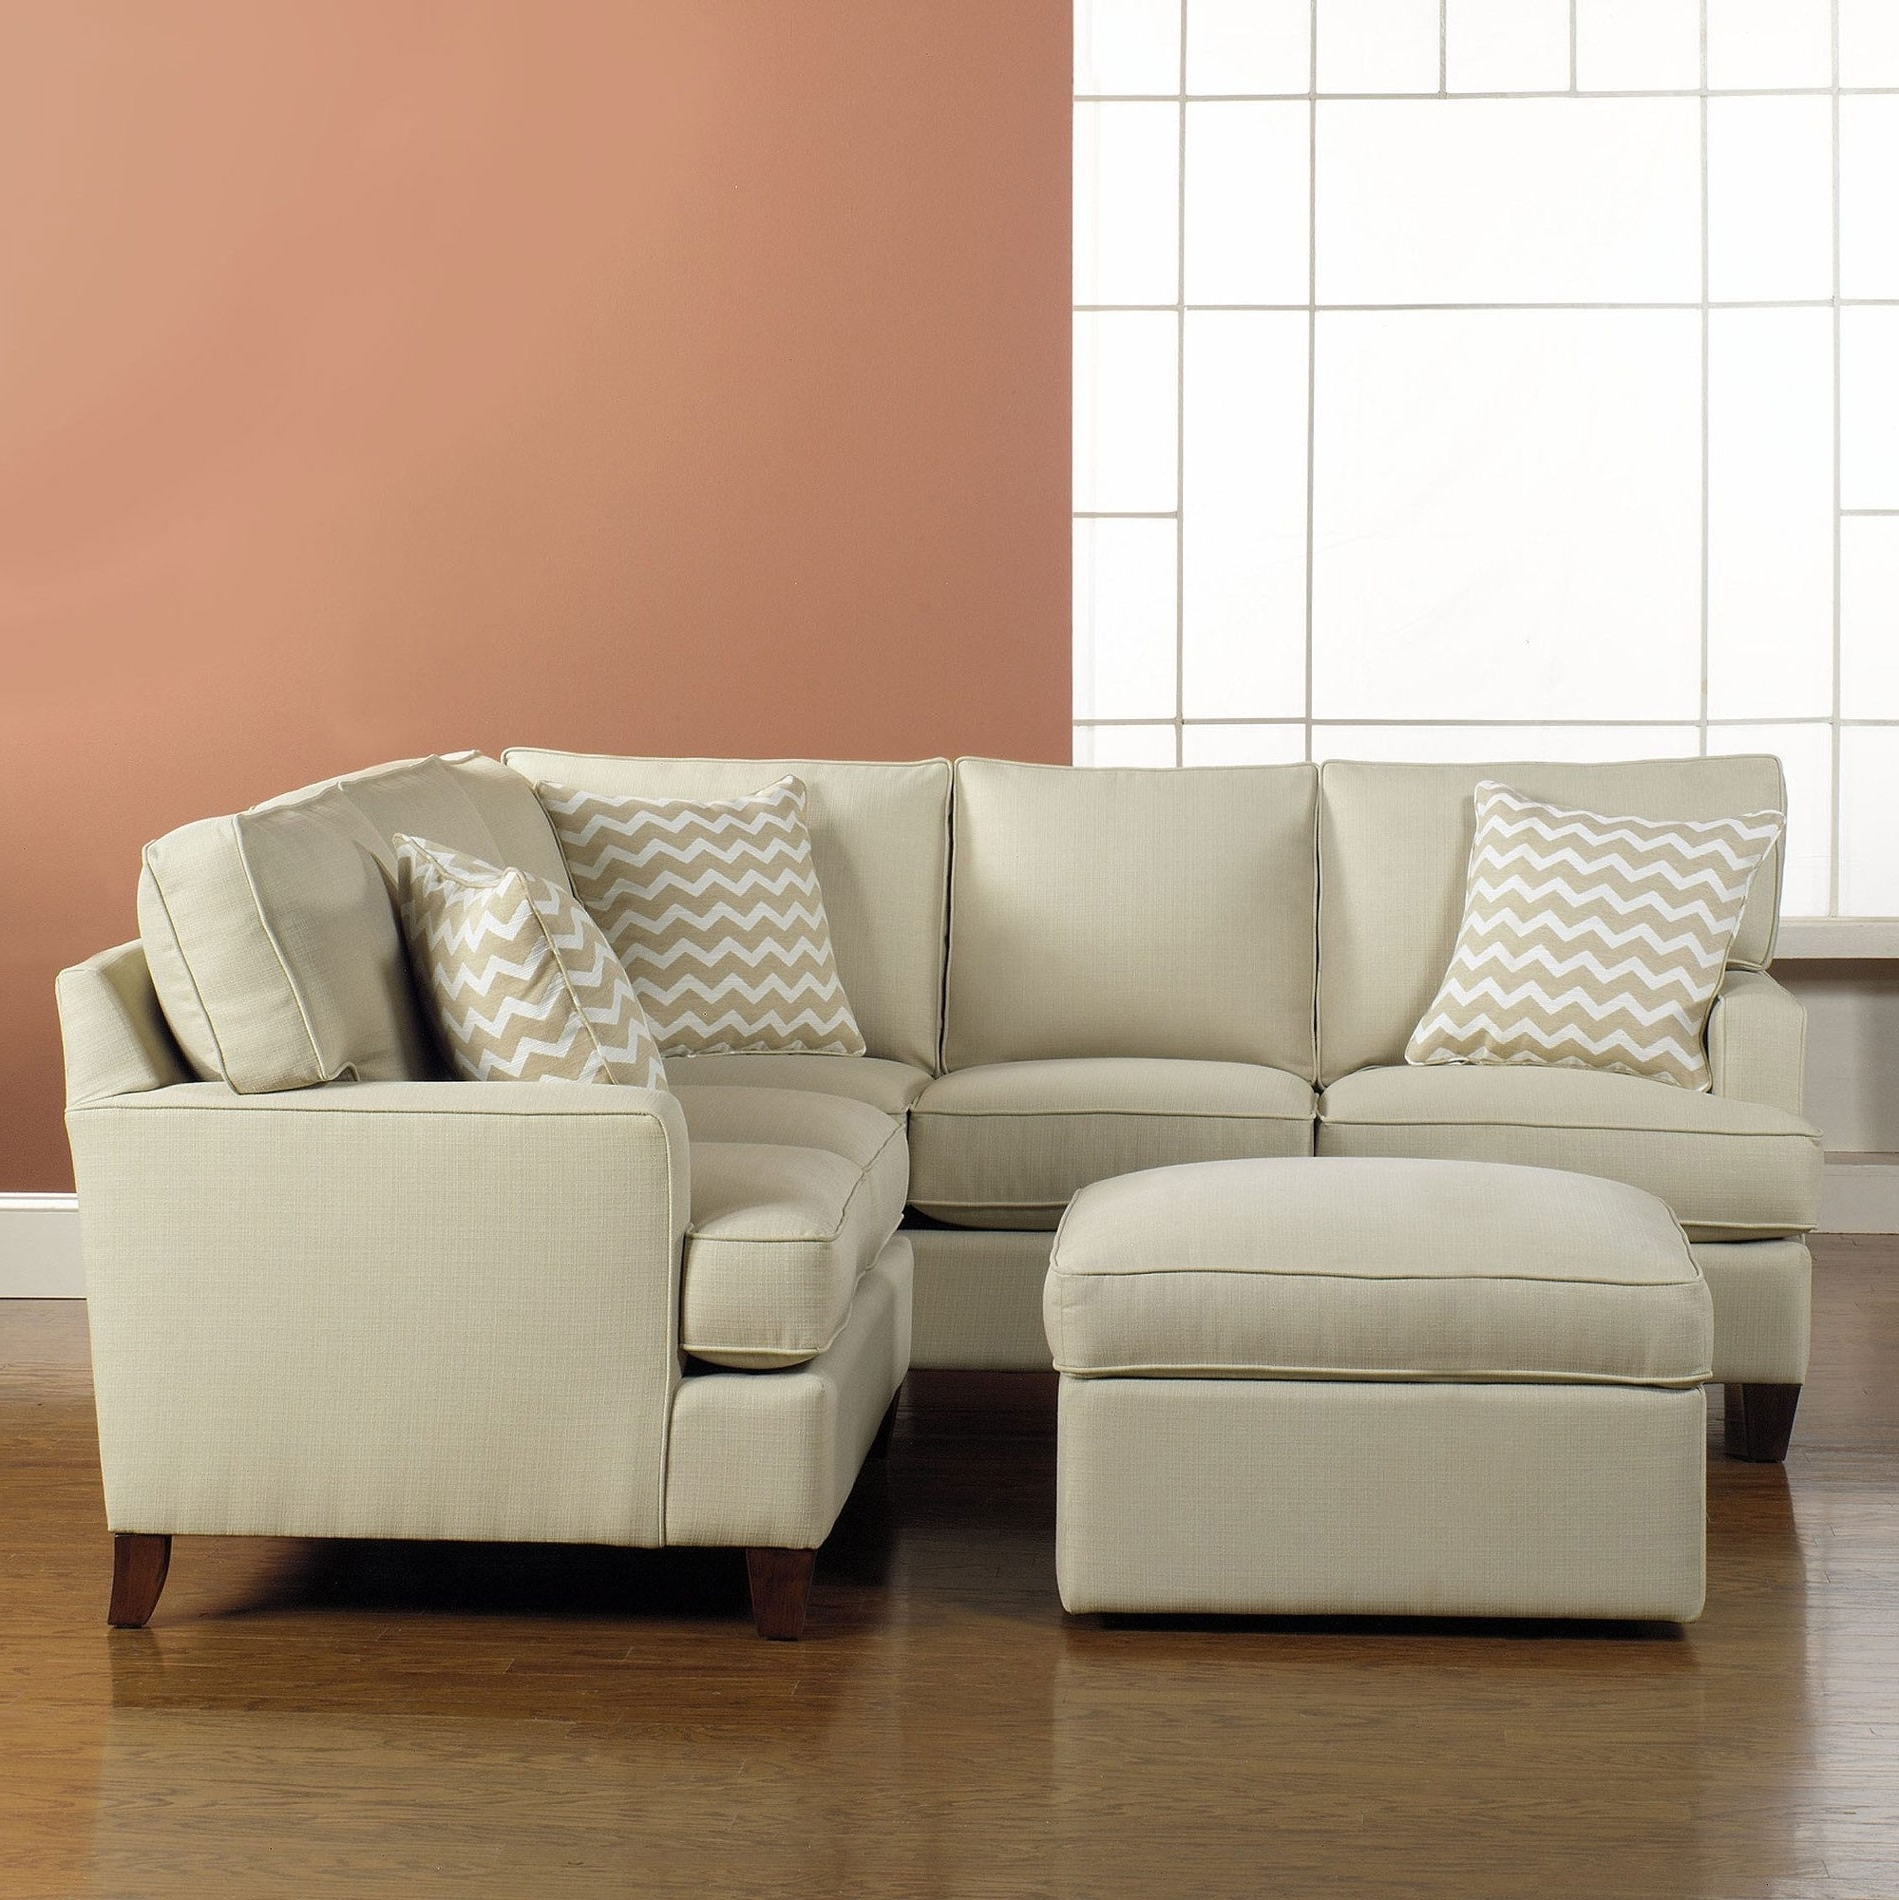 Small Scale Sofas Pertaining To Most Recent Small Loveseats For Apartments Modern Furniture Small Spaces Small (View 5 of 20)